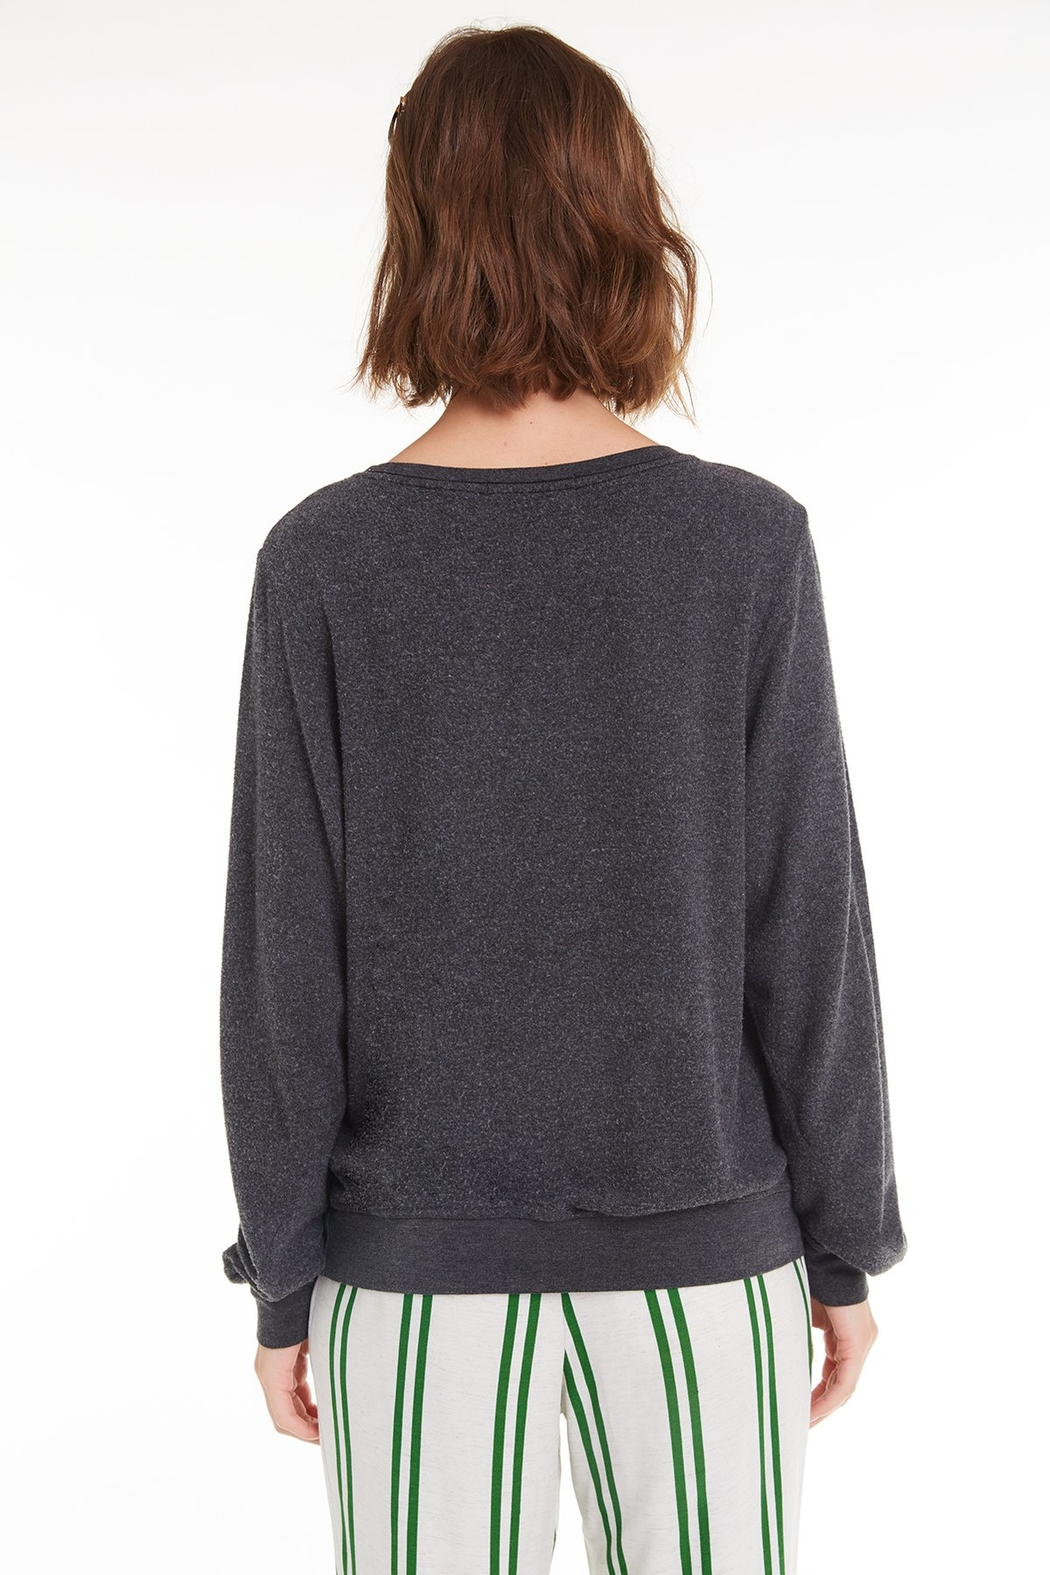 Wildfox Wine Me Over Baggy Beach Jumper - Side Cropped Image